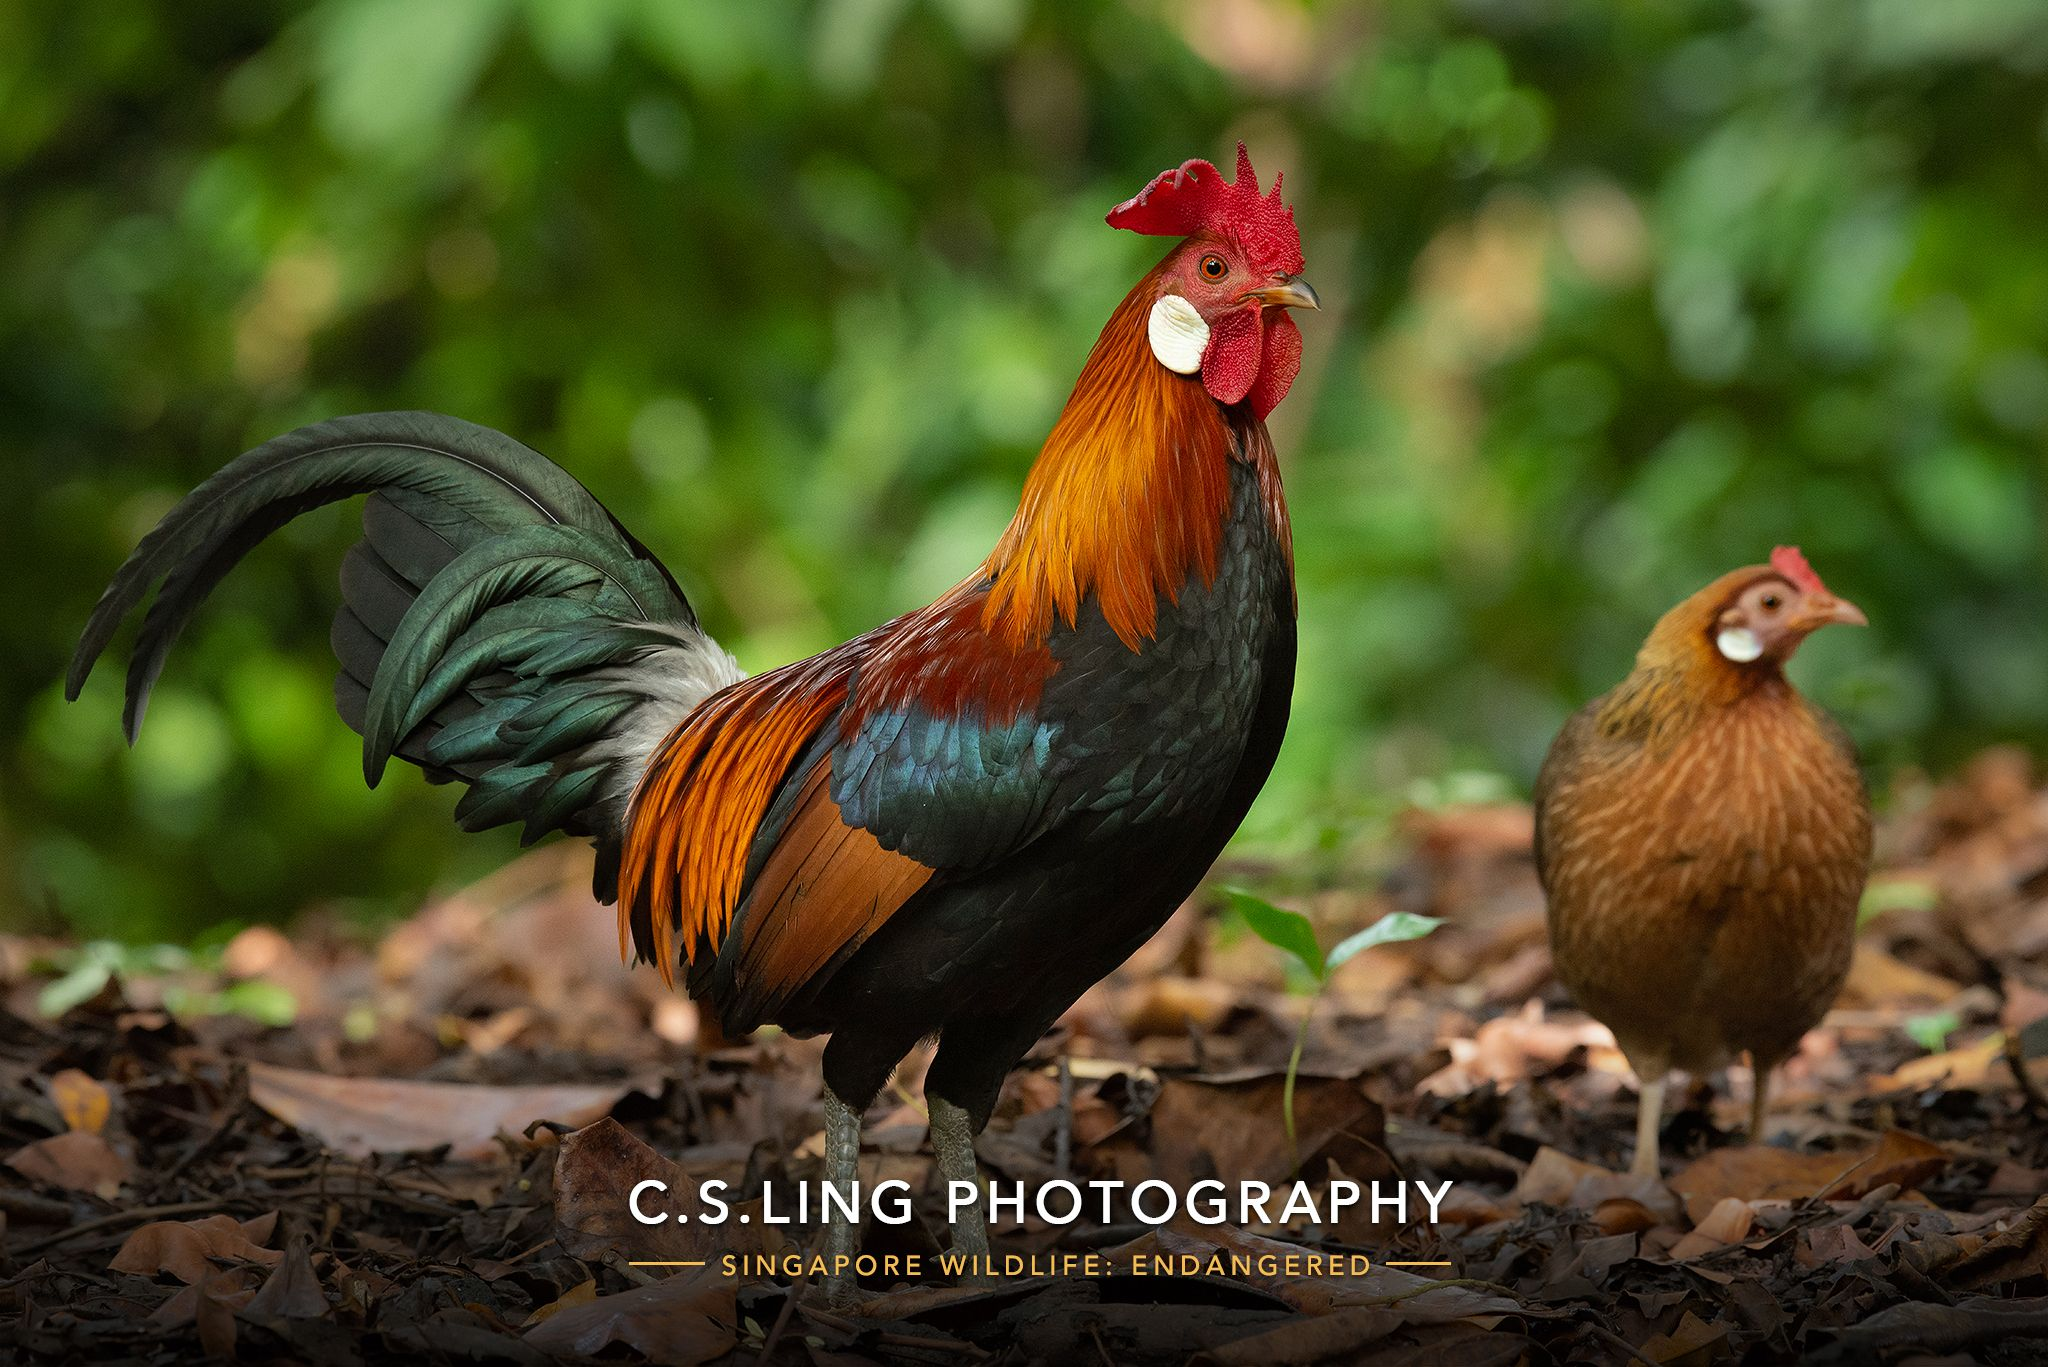 Endangered Red JungleFowl in Singapore | Wildlife Photographer in Asia, C.S.Ling